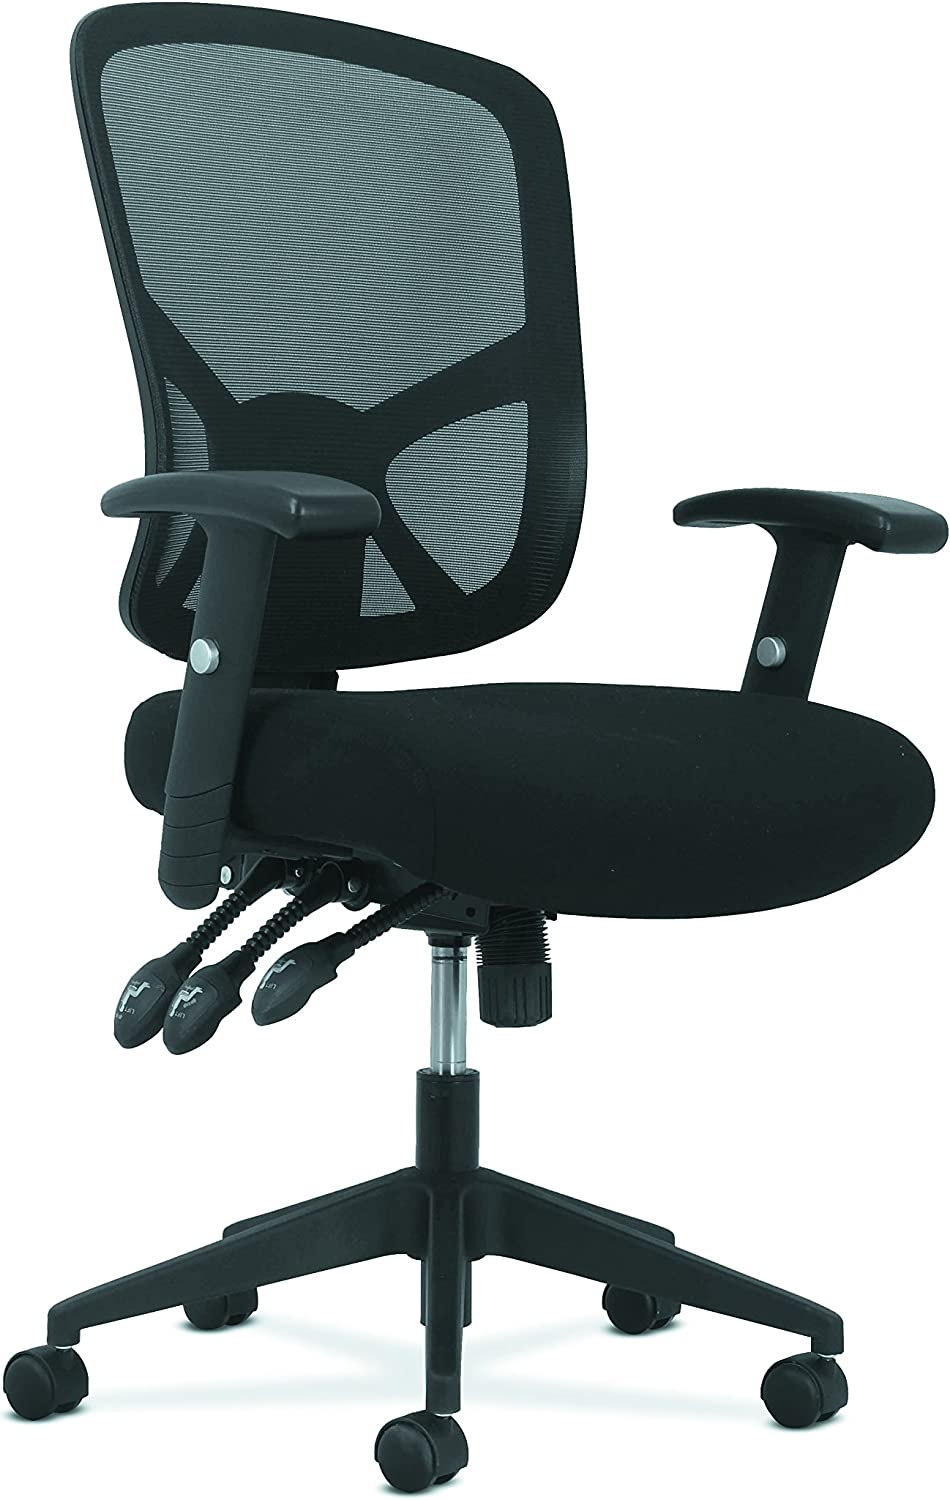 Sadie Customizable Ergonomic High-Back Mesh Task Chair with Arms and Lumbar Support - Ergonomic Computer/Office Chair (HVST121)